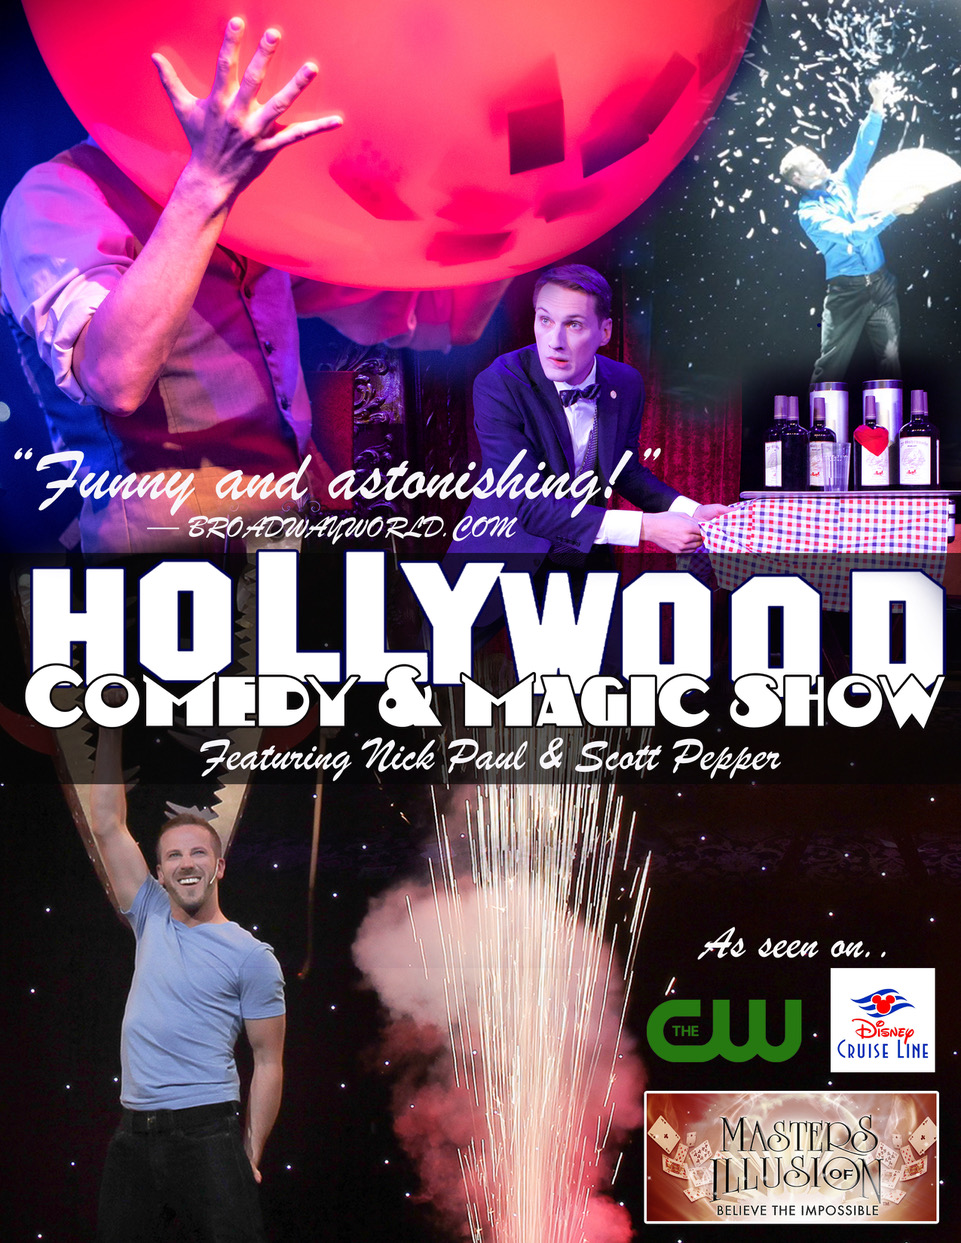 Hollywood Comedy and Magic Show is currently touring select dates around the USA